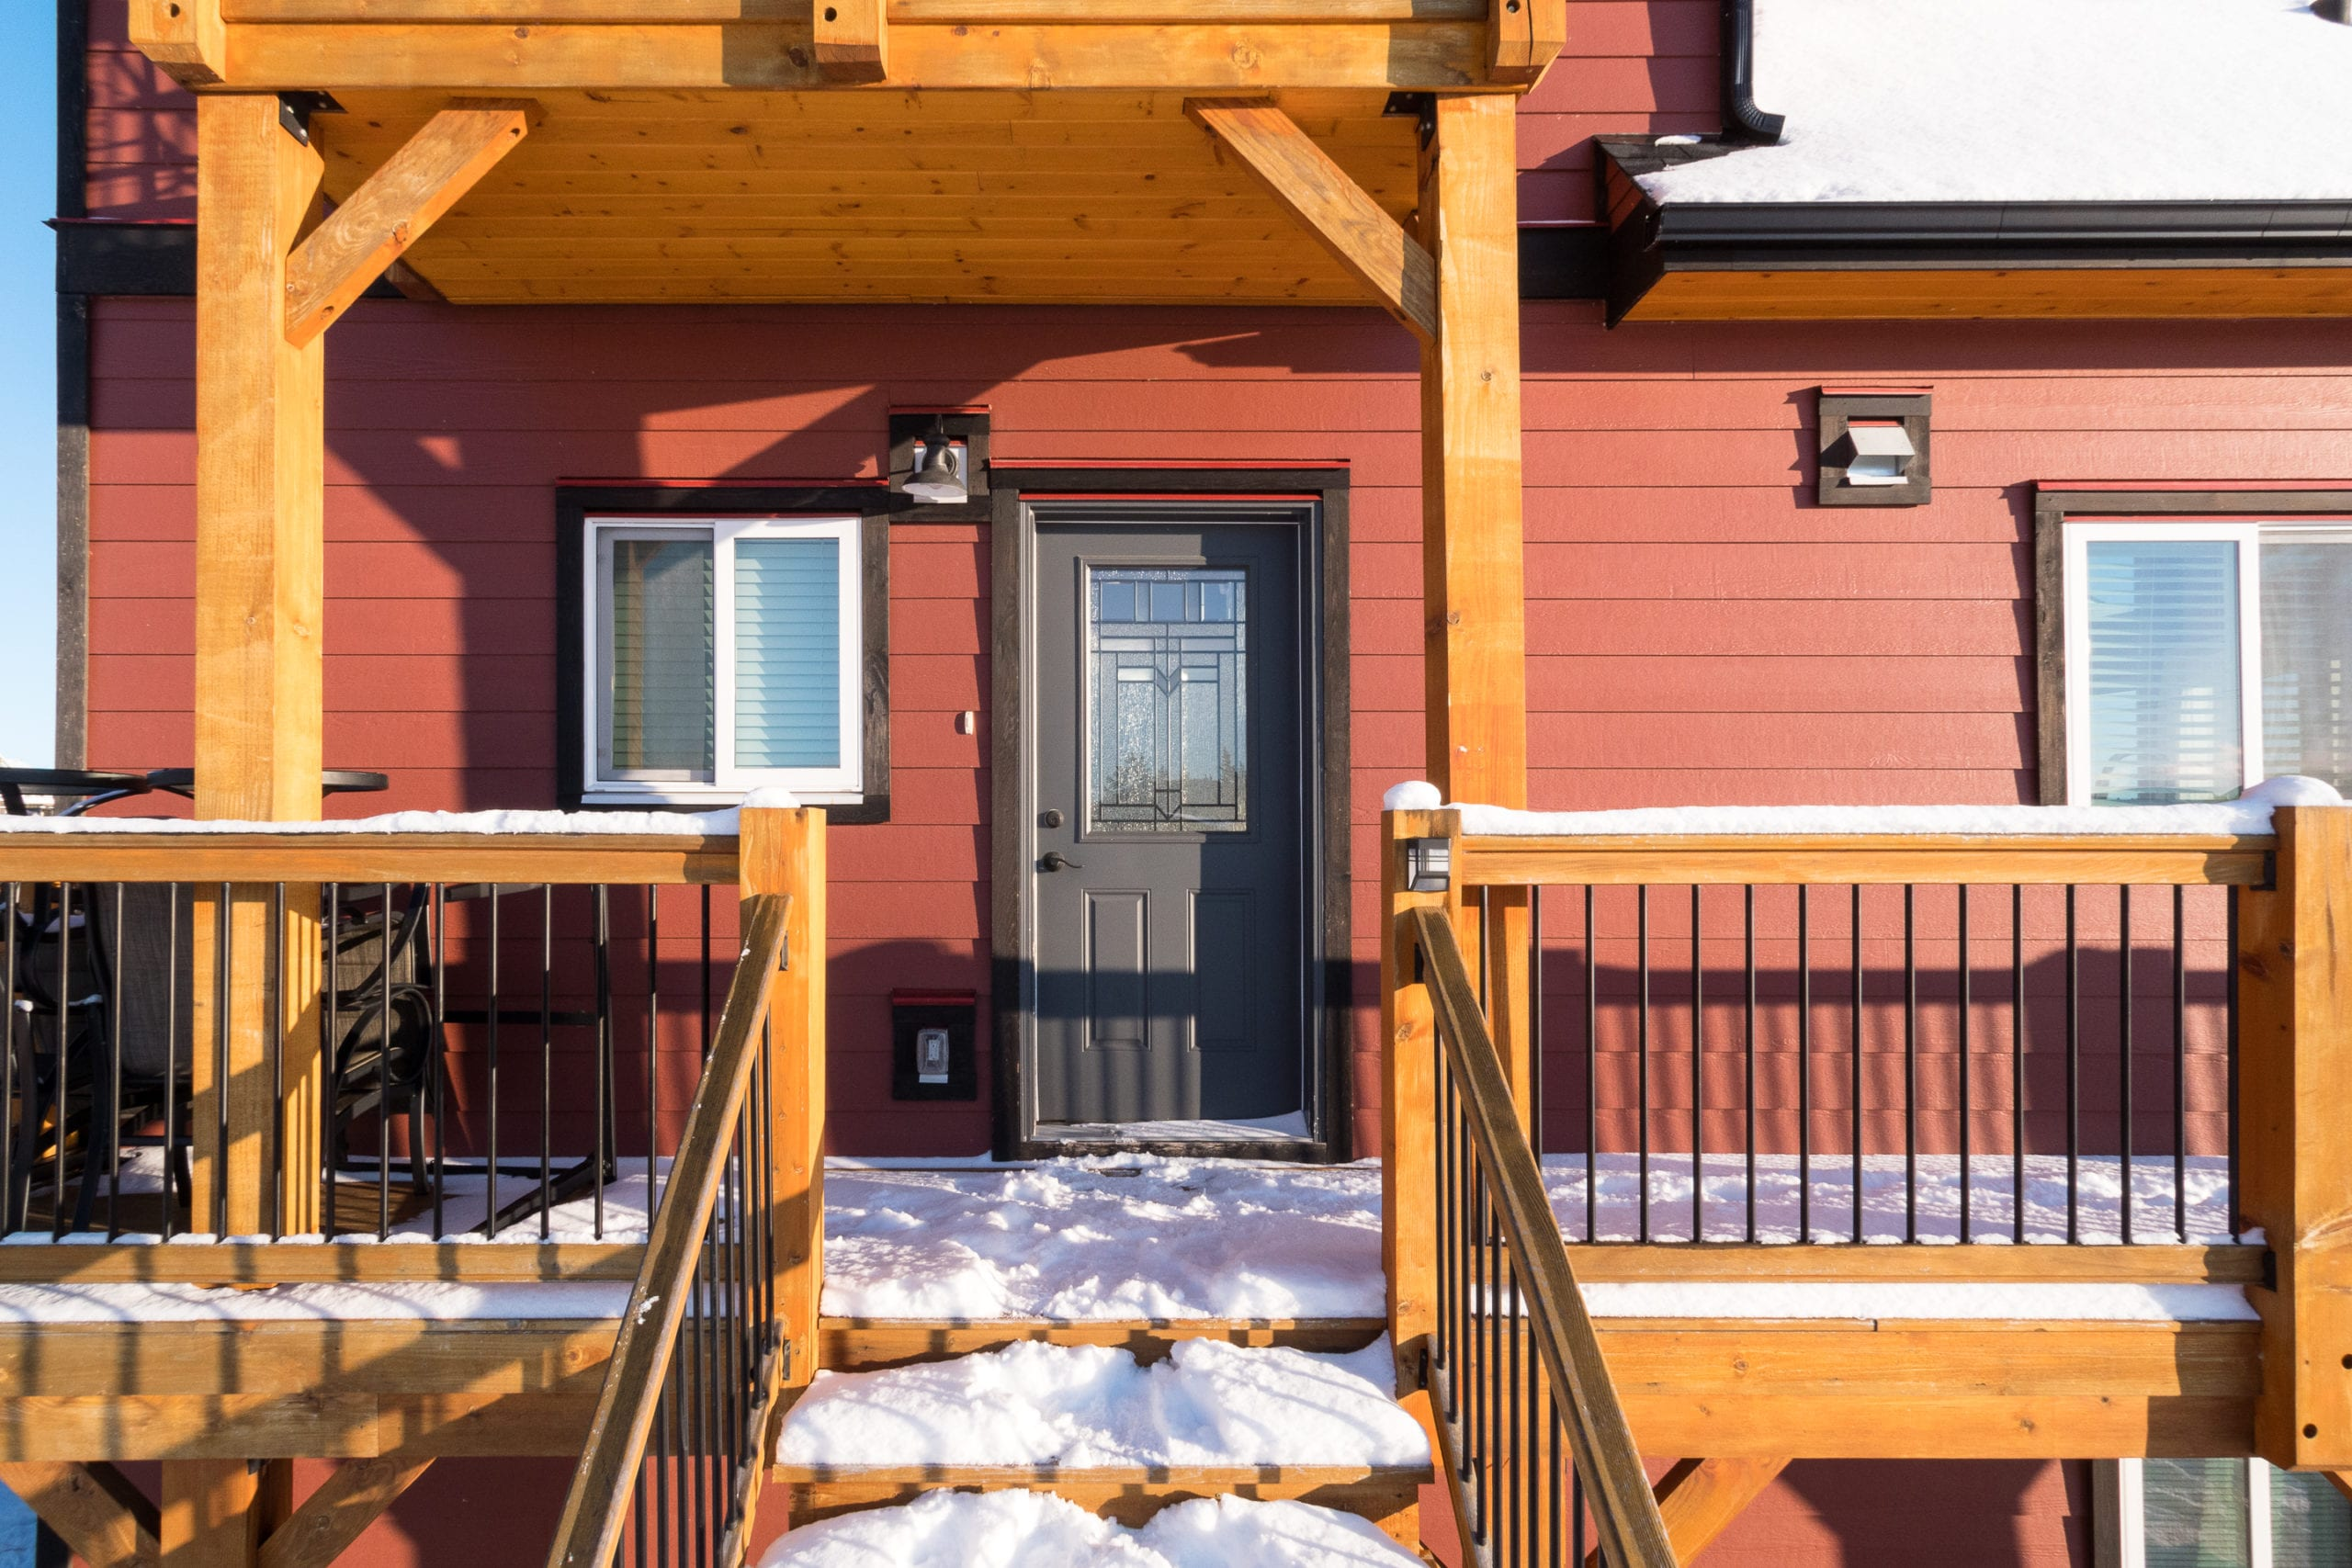 Hello Gorgeous - 456 Cottageclub Cove, Rocky View No. 44, AB - Tara Molina Real Estate (2 of 41)